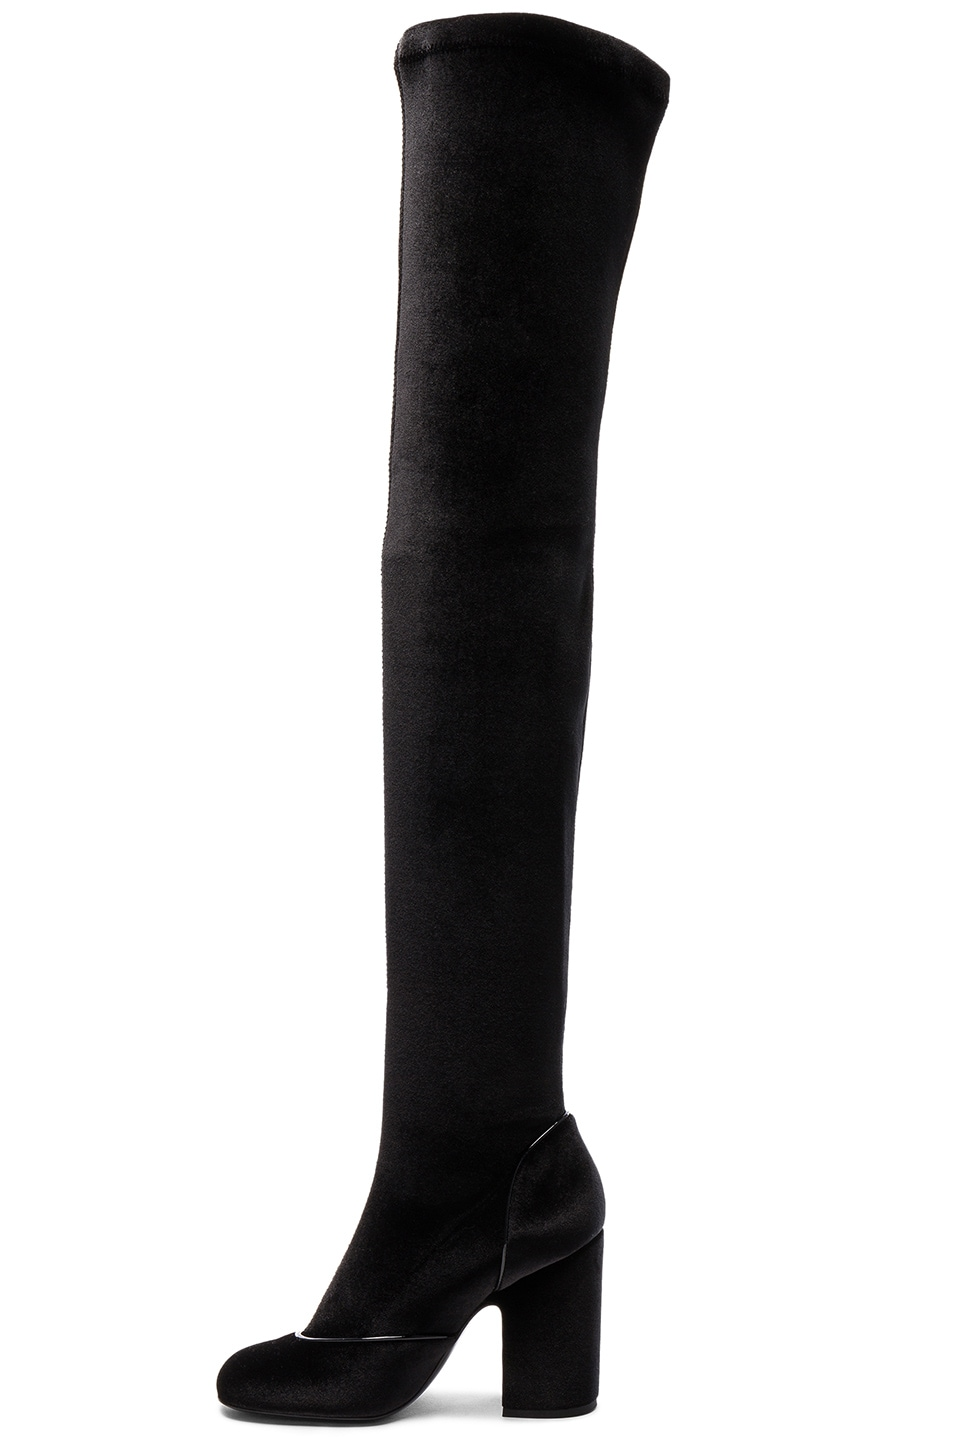 52bca74ae4f Image 5 of Laurence Dacade Velvet Madison Boots in Black